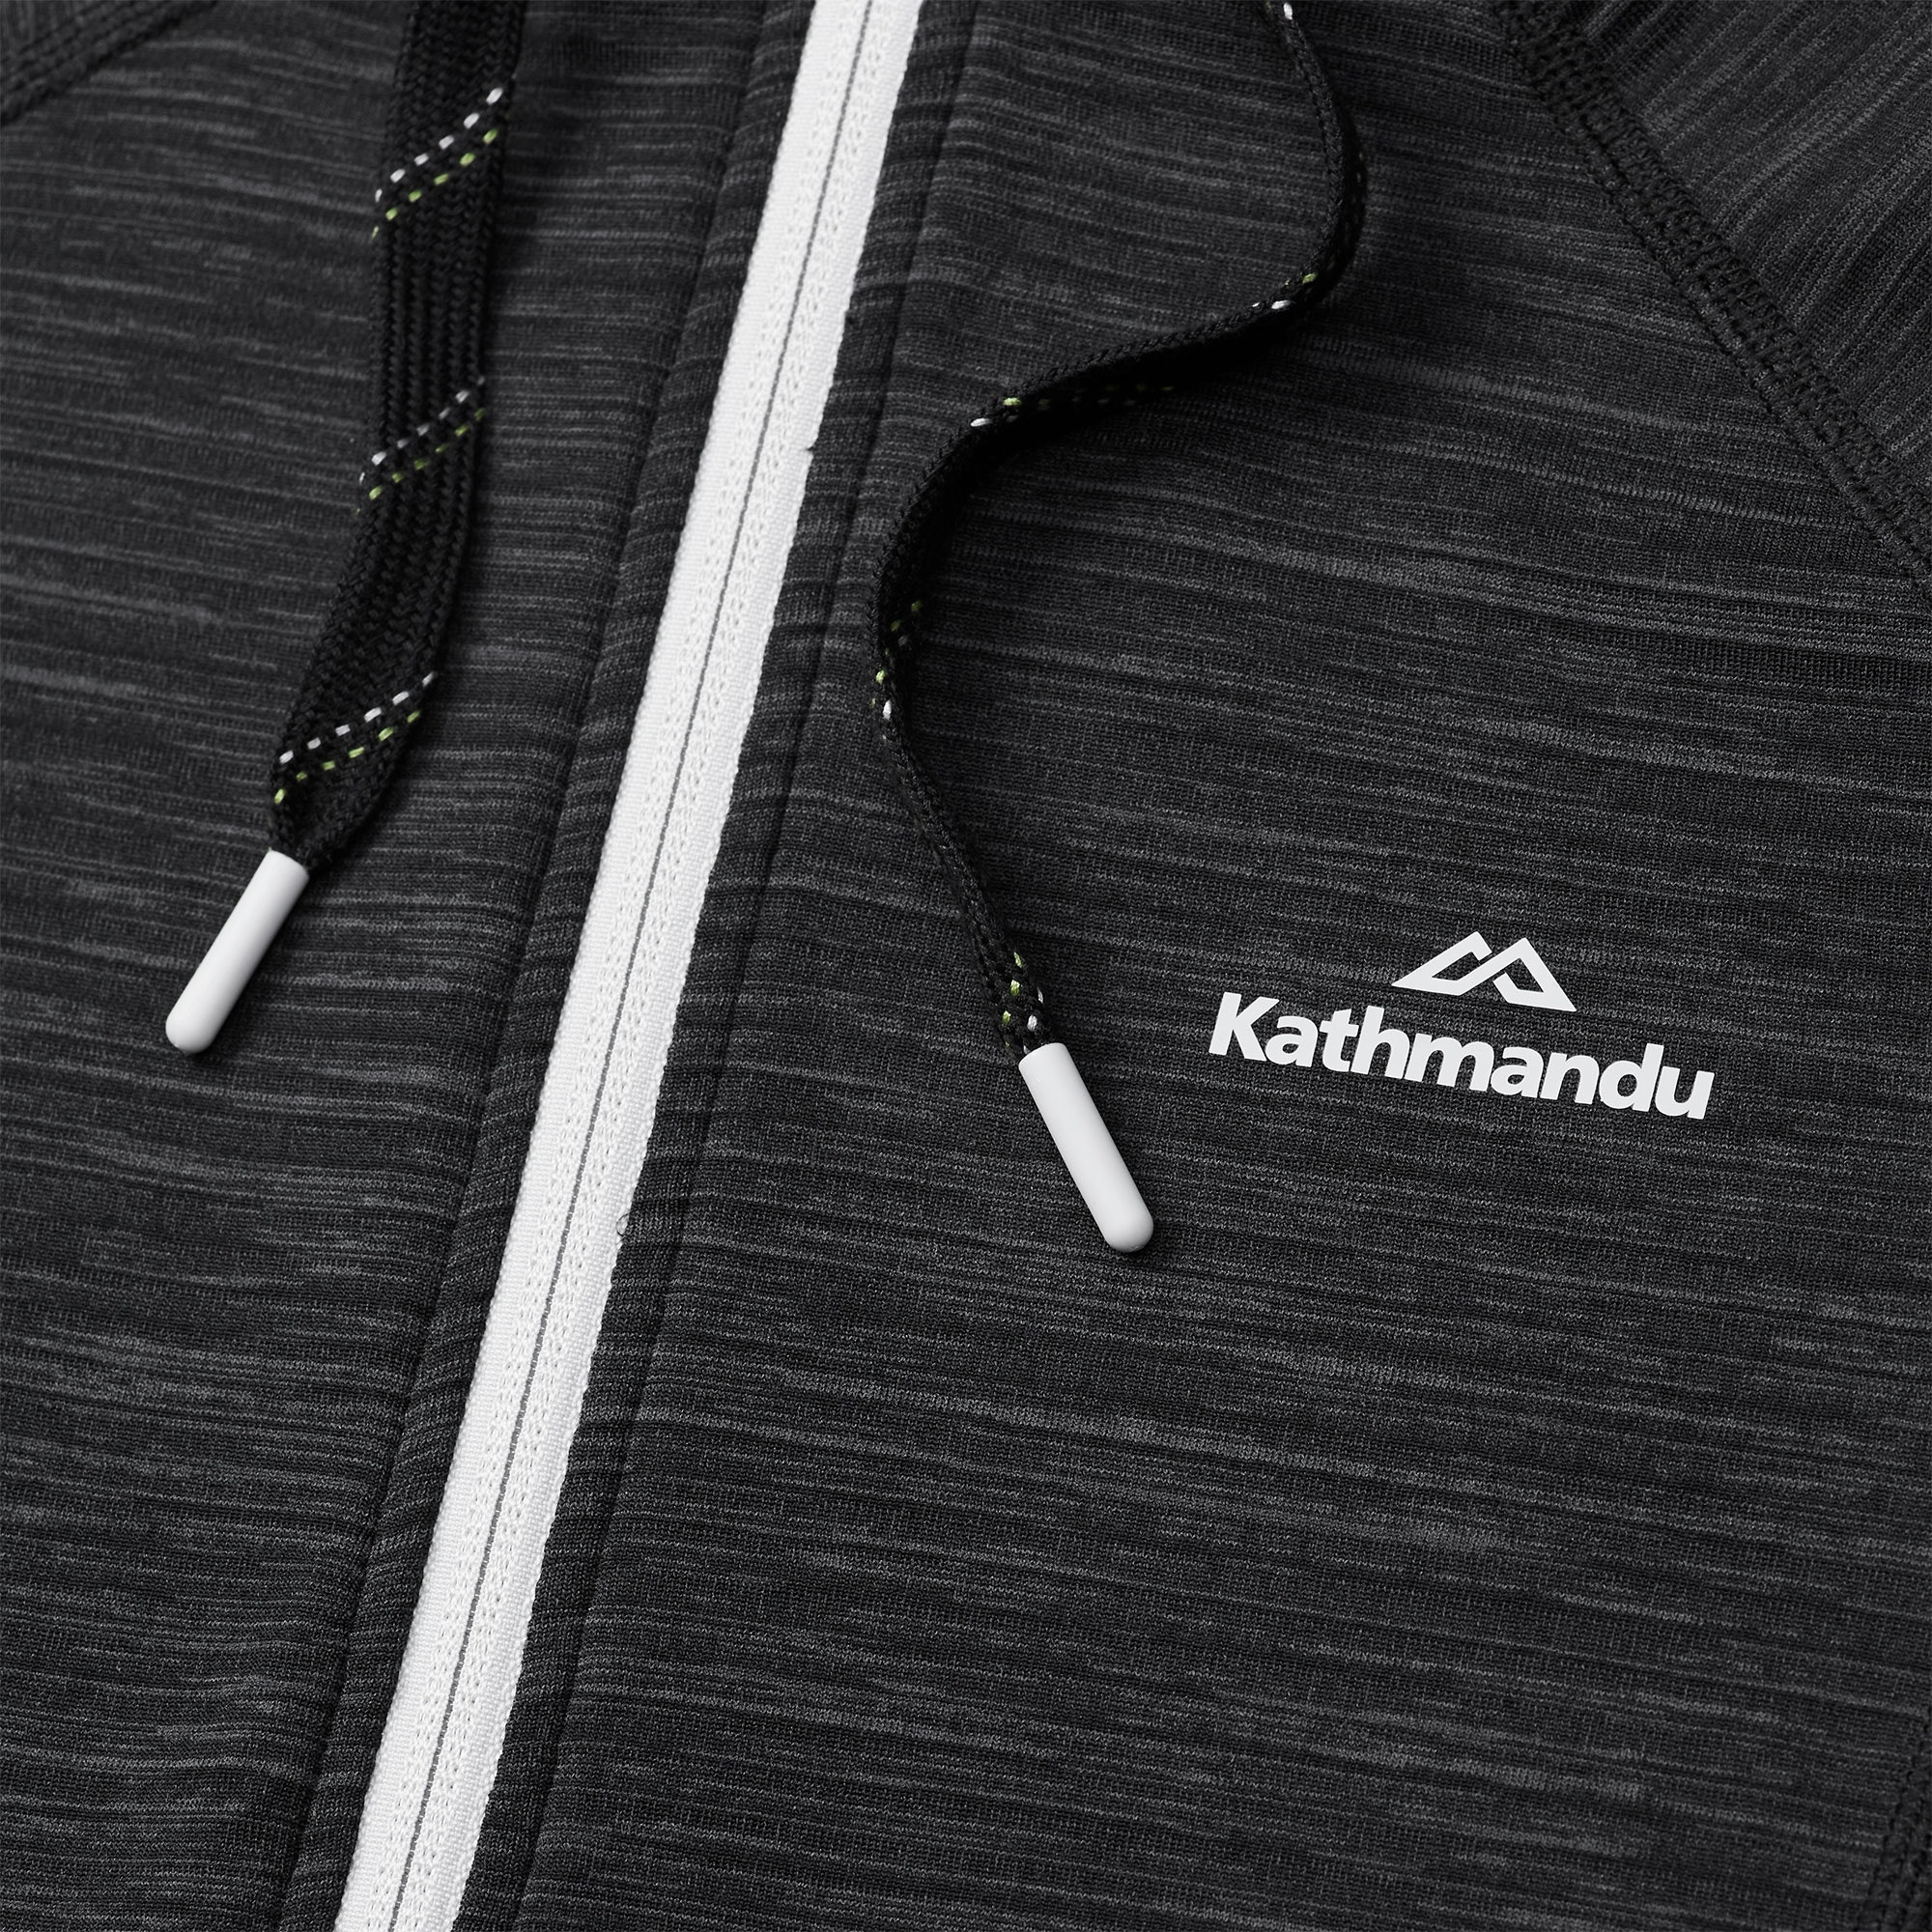 NEW-Kathmandu-Acota-Women-s-Hooded-Fleece-Lightweight-Breathable-Outdoor-Jacket thumbnail 15